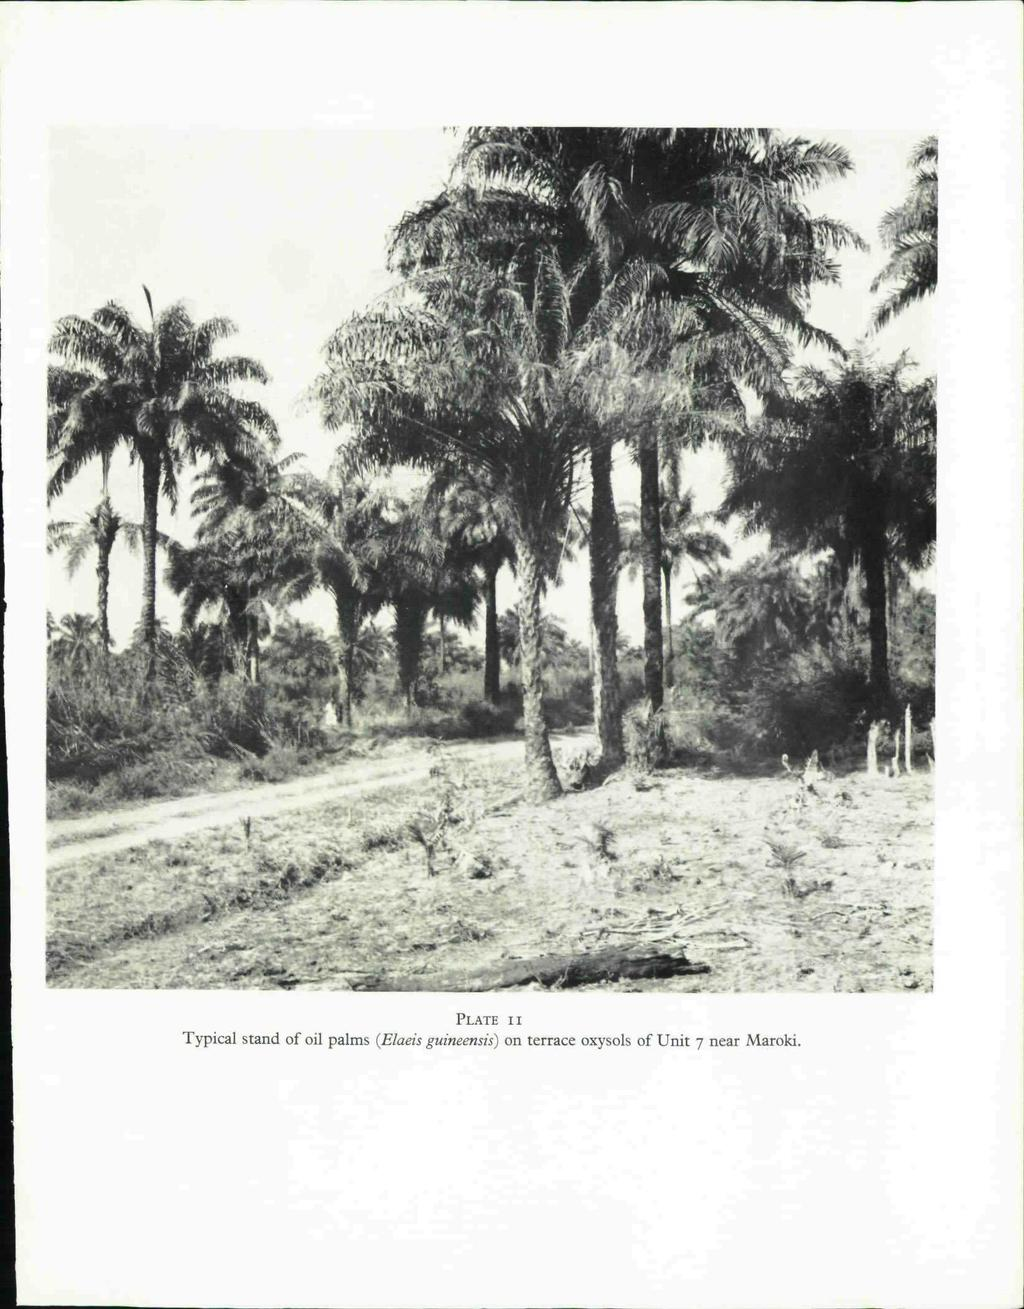 PLATE II Typical stand of oil palms (Elaeis